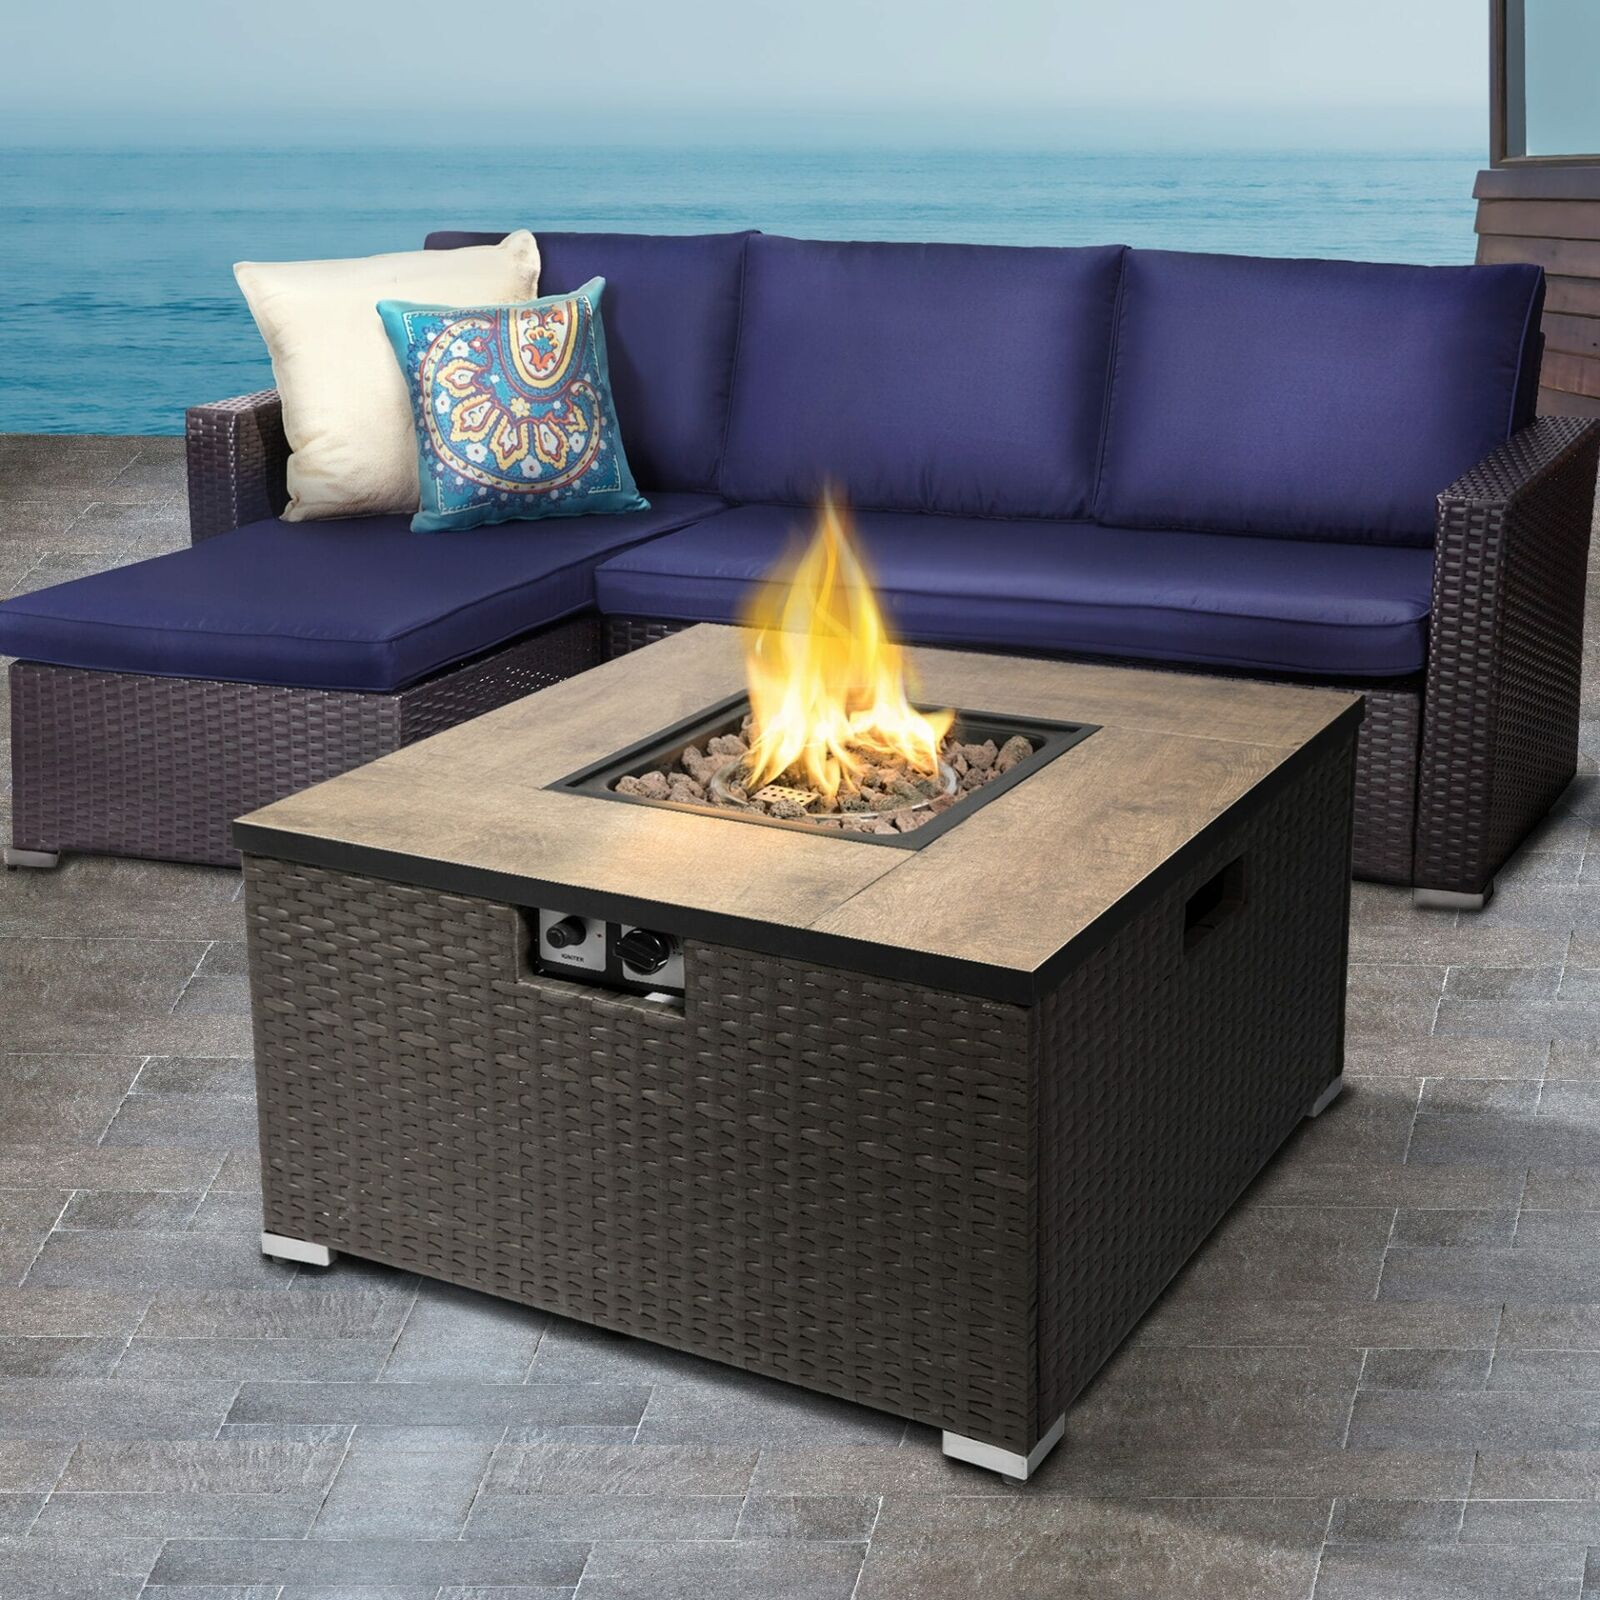 Peaktop Firepit Outdoor Gas Fire Pit Steel With Lava Rock & Cover HF31188AA-UK